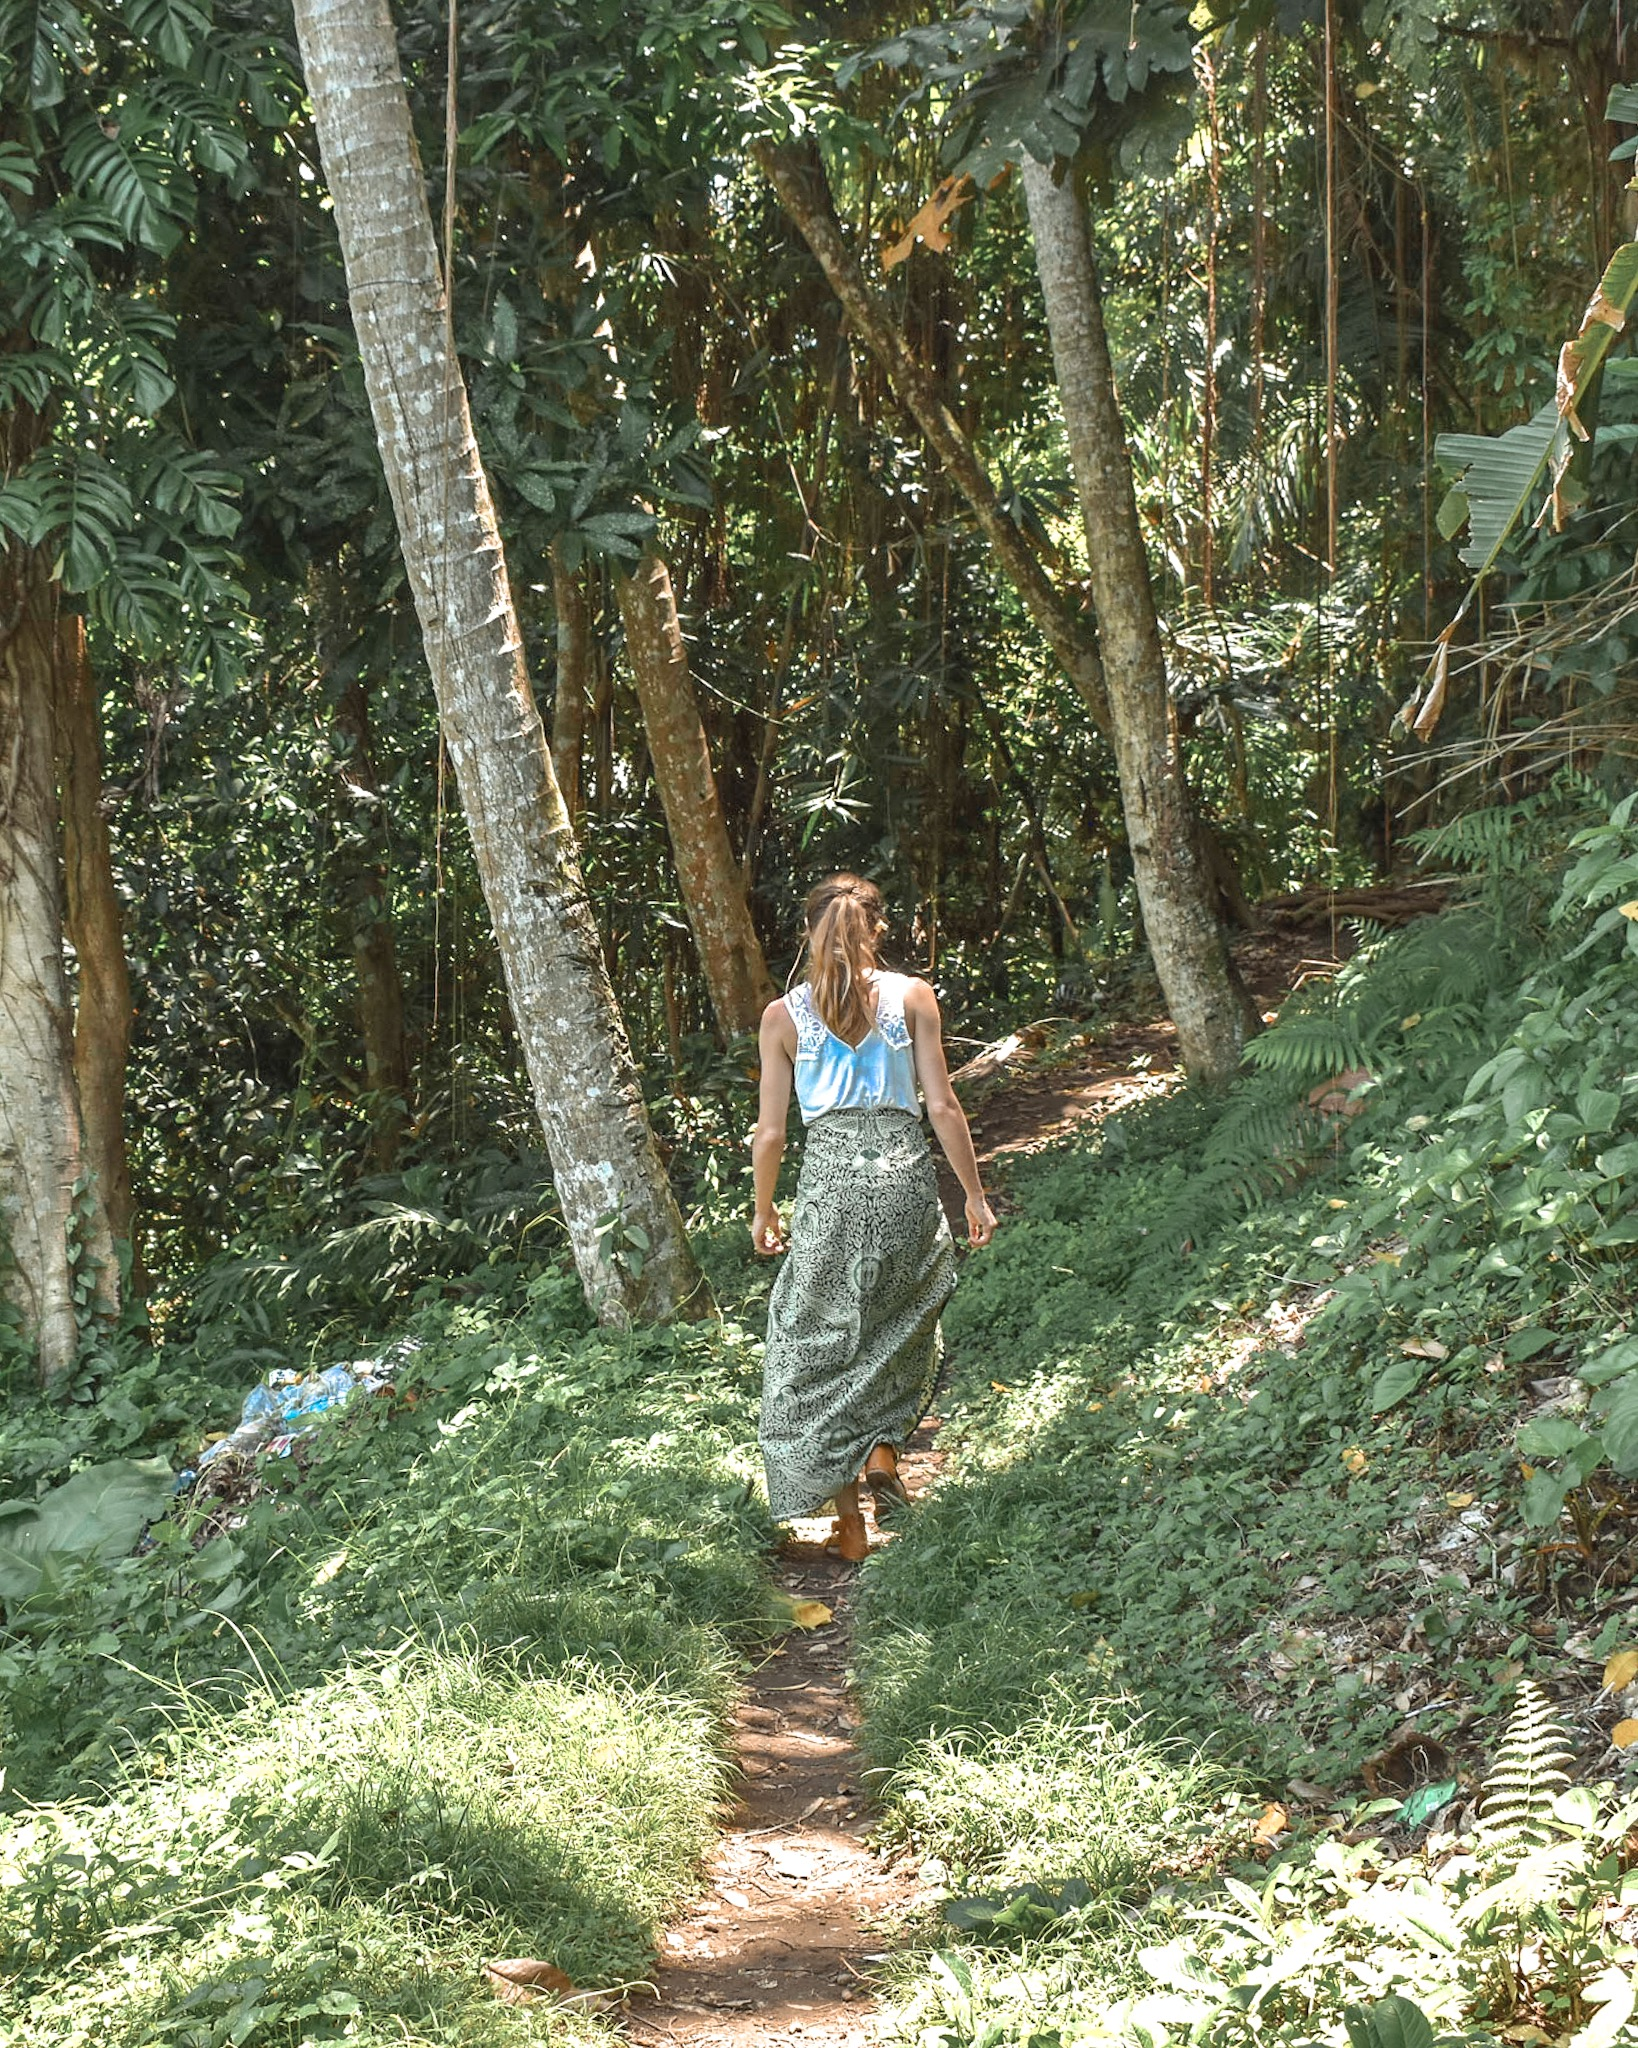 Woman Walks Through Jungle in Bali, Indonesia